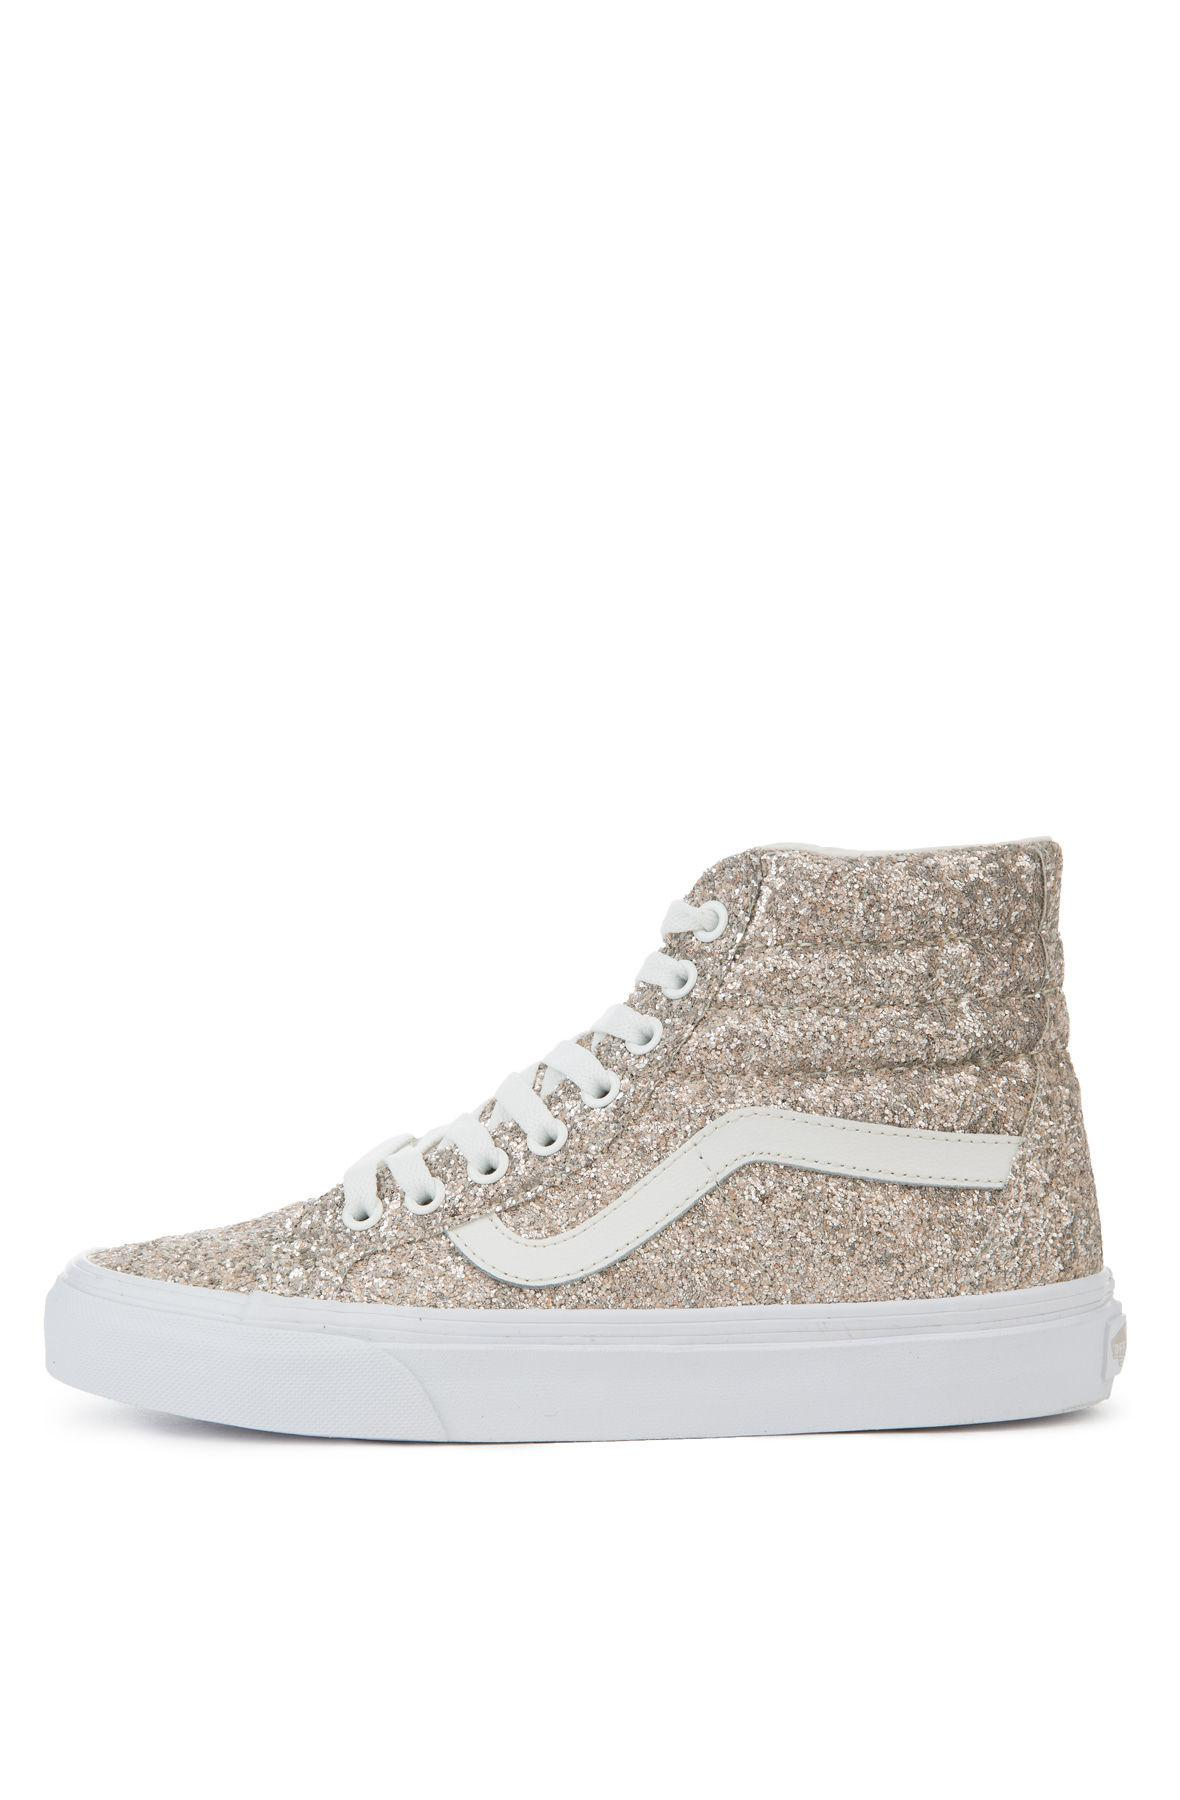 Lyst - Vans The Women s Sk8-hi Reissue Chunky Glitter In Multi And ... a42872654